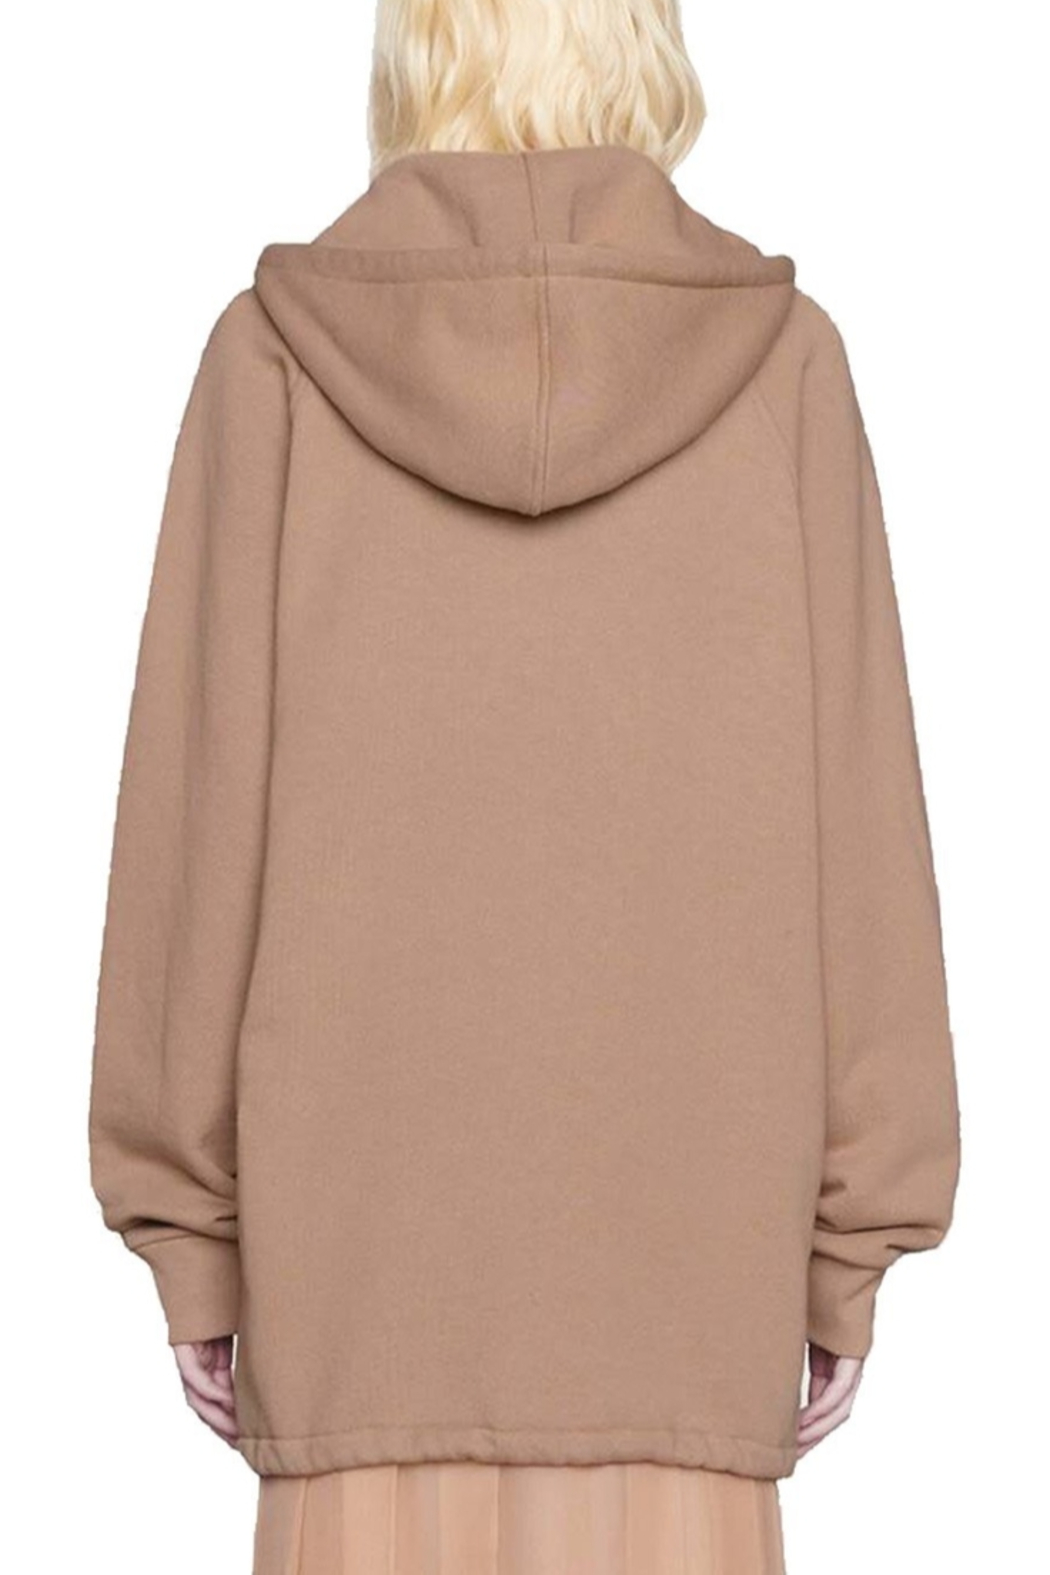 Gucci Oversized Cotton-Jersey Hoodie - Front Full Image